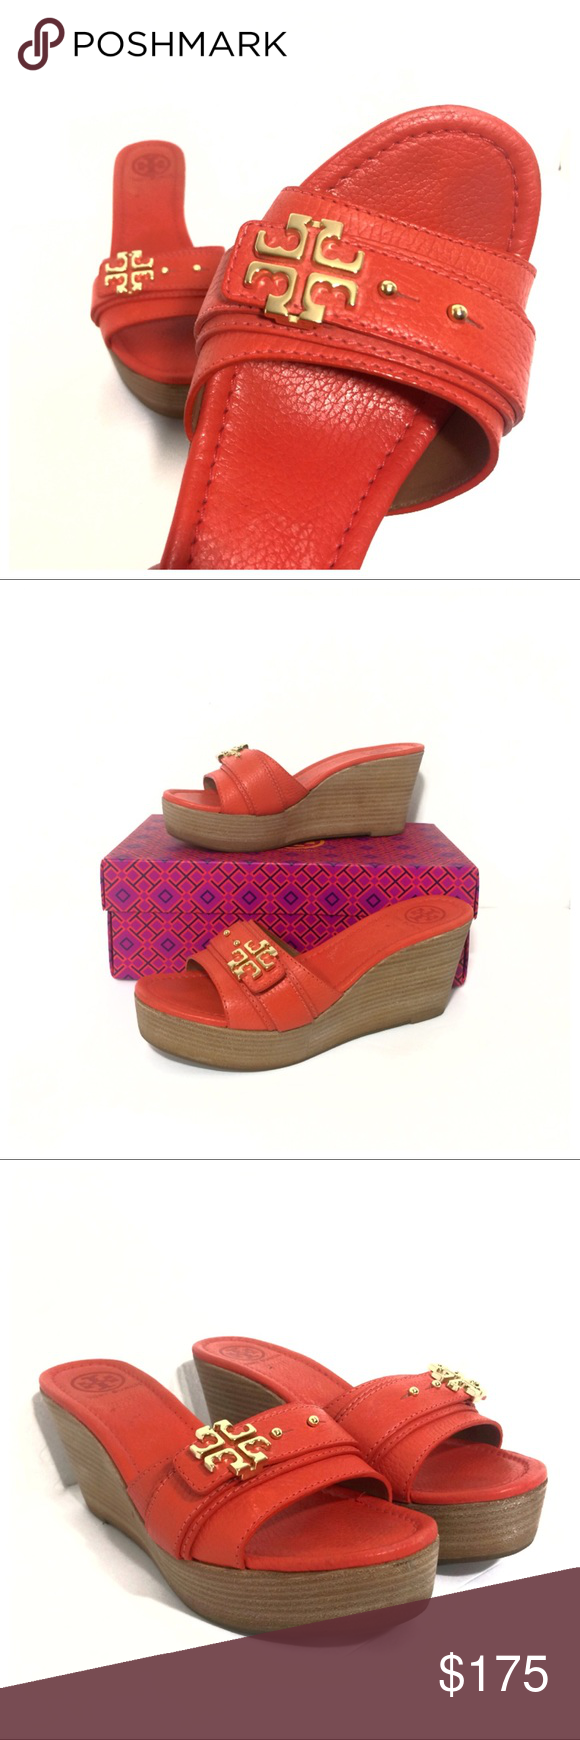 02fa76ddee4ec Tory Burch Elina Mid Wedge Sandals Habanero Pepper Tory Burch Elina Mid Wedge  Sandals in Habanero